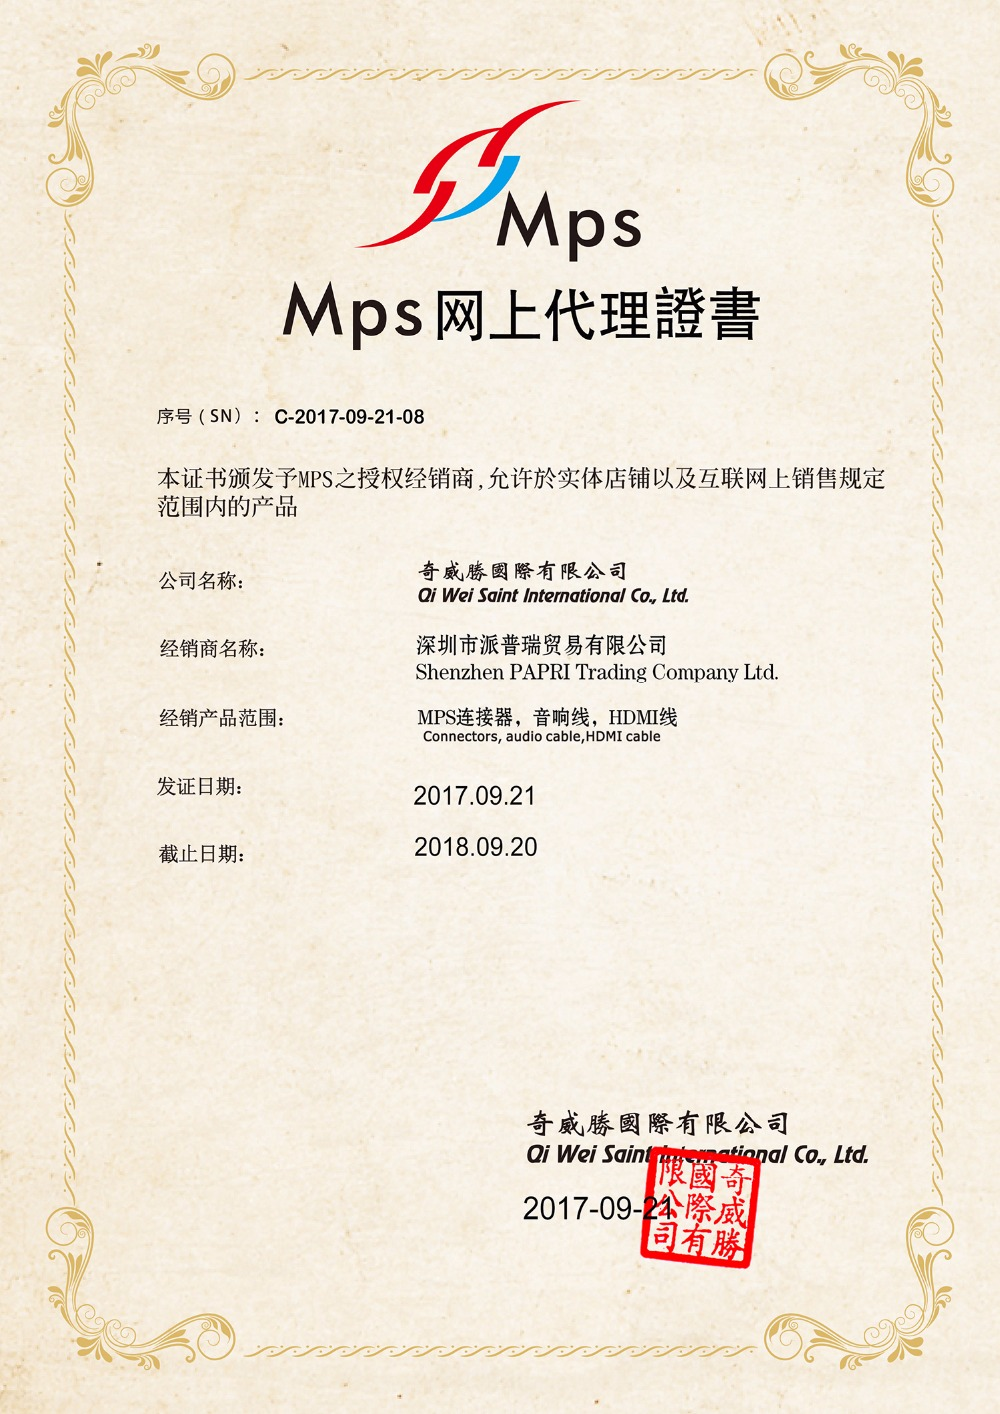 HIFI MPS X-9 99.999% OCC 6N Silver Plated headphone cable DIY earphone wire audio cable wire RCA Speaker audio cable 1M